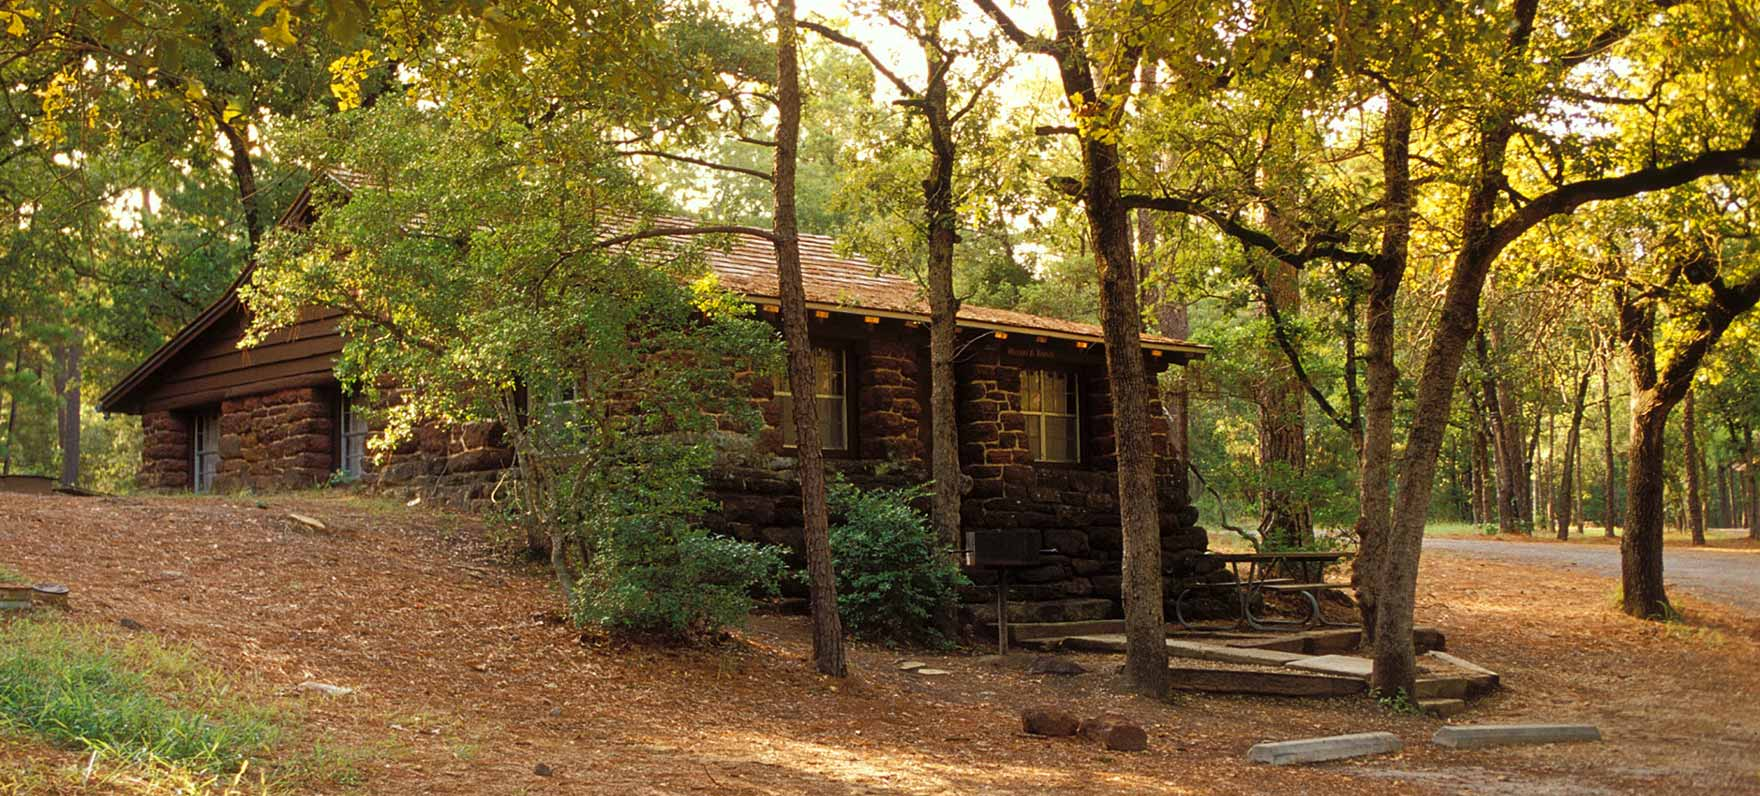 cabins img cove vacation tx texas slide log in homes rental country rent cabin austin lake